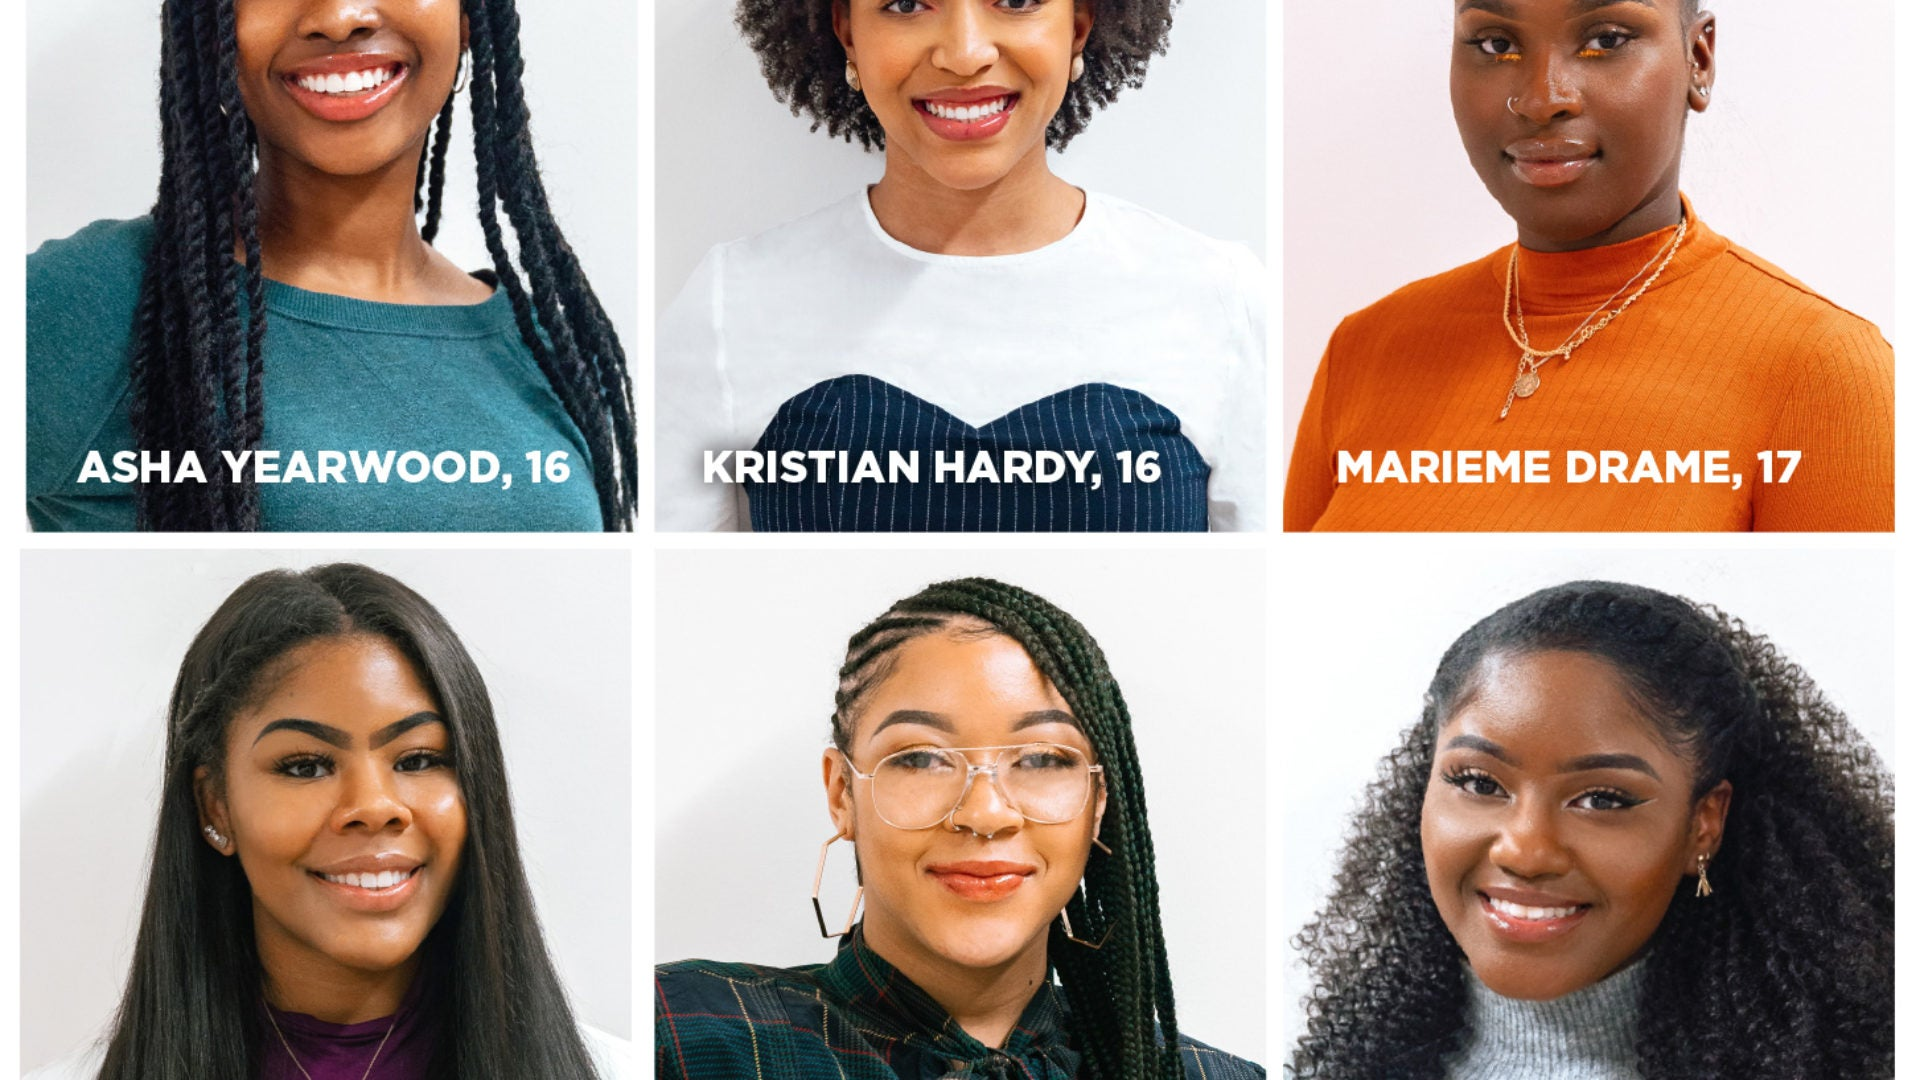 Meet Our Girl Squad As We Unlock Beautiful Possibilities